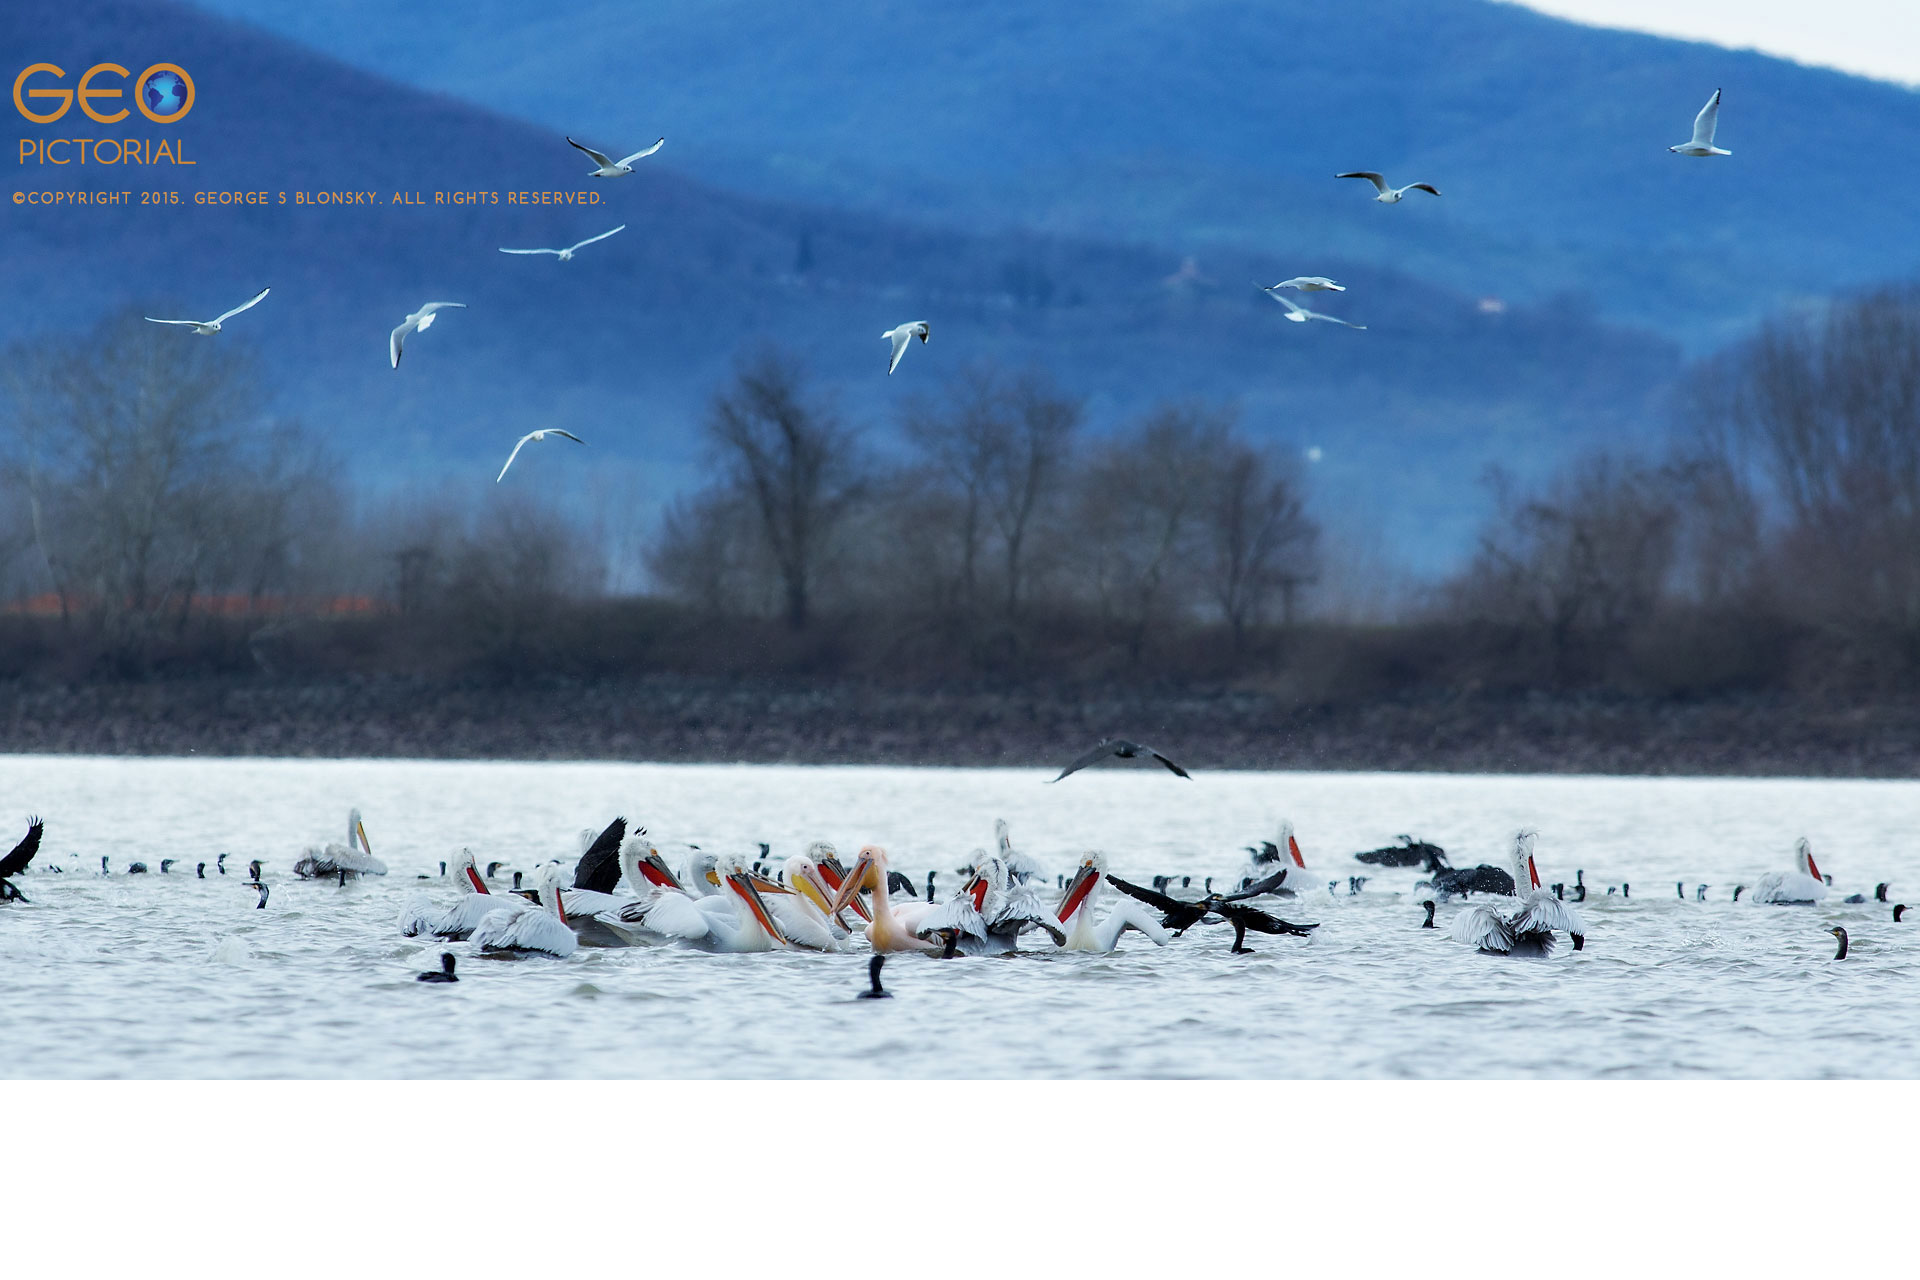 Dalmatian Pelicans, White Pelicans, Cormorants and Black-headed Gulls in a feeding frenzy over a school of fish